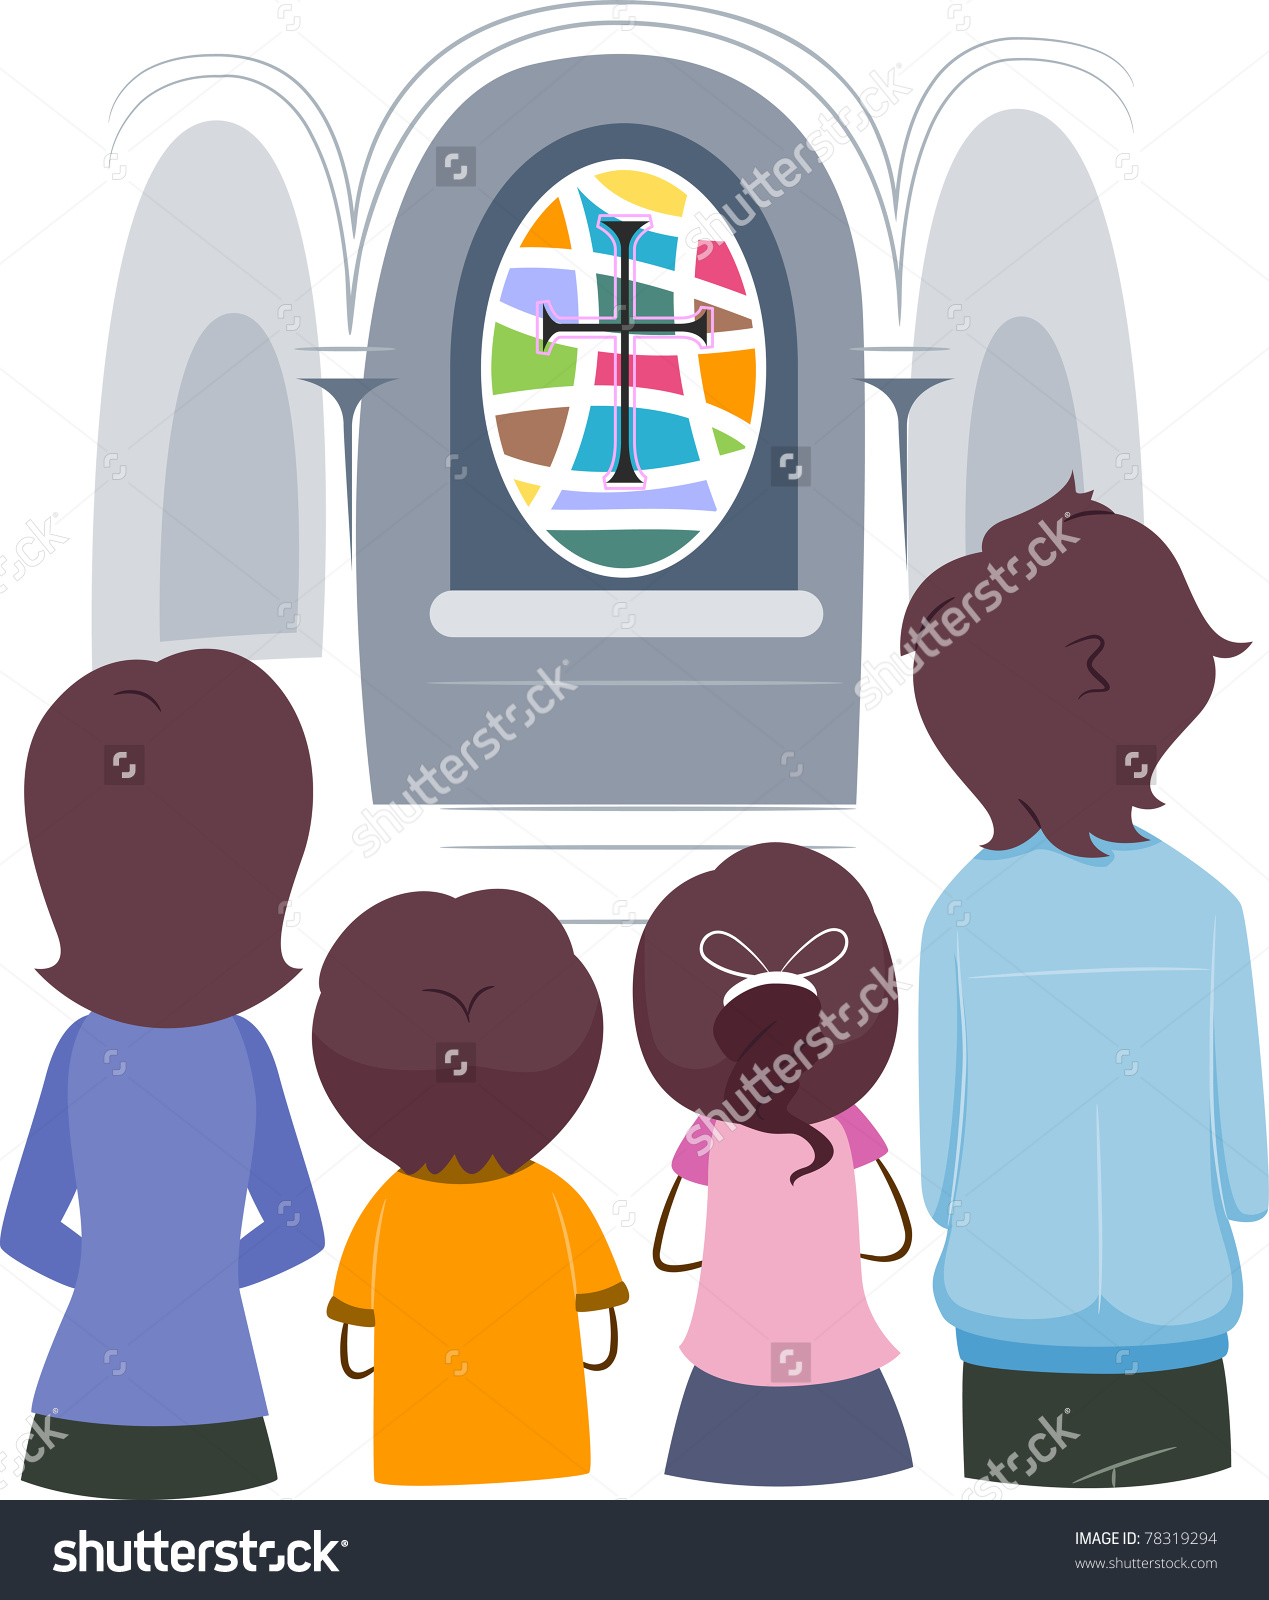 Family praying in church clipart.